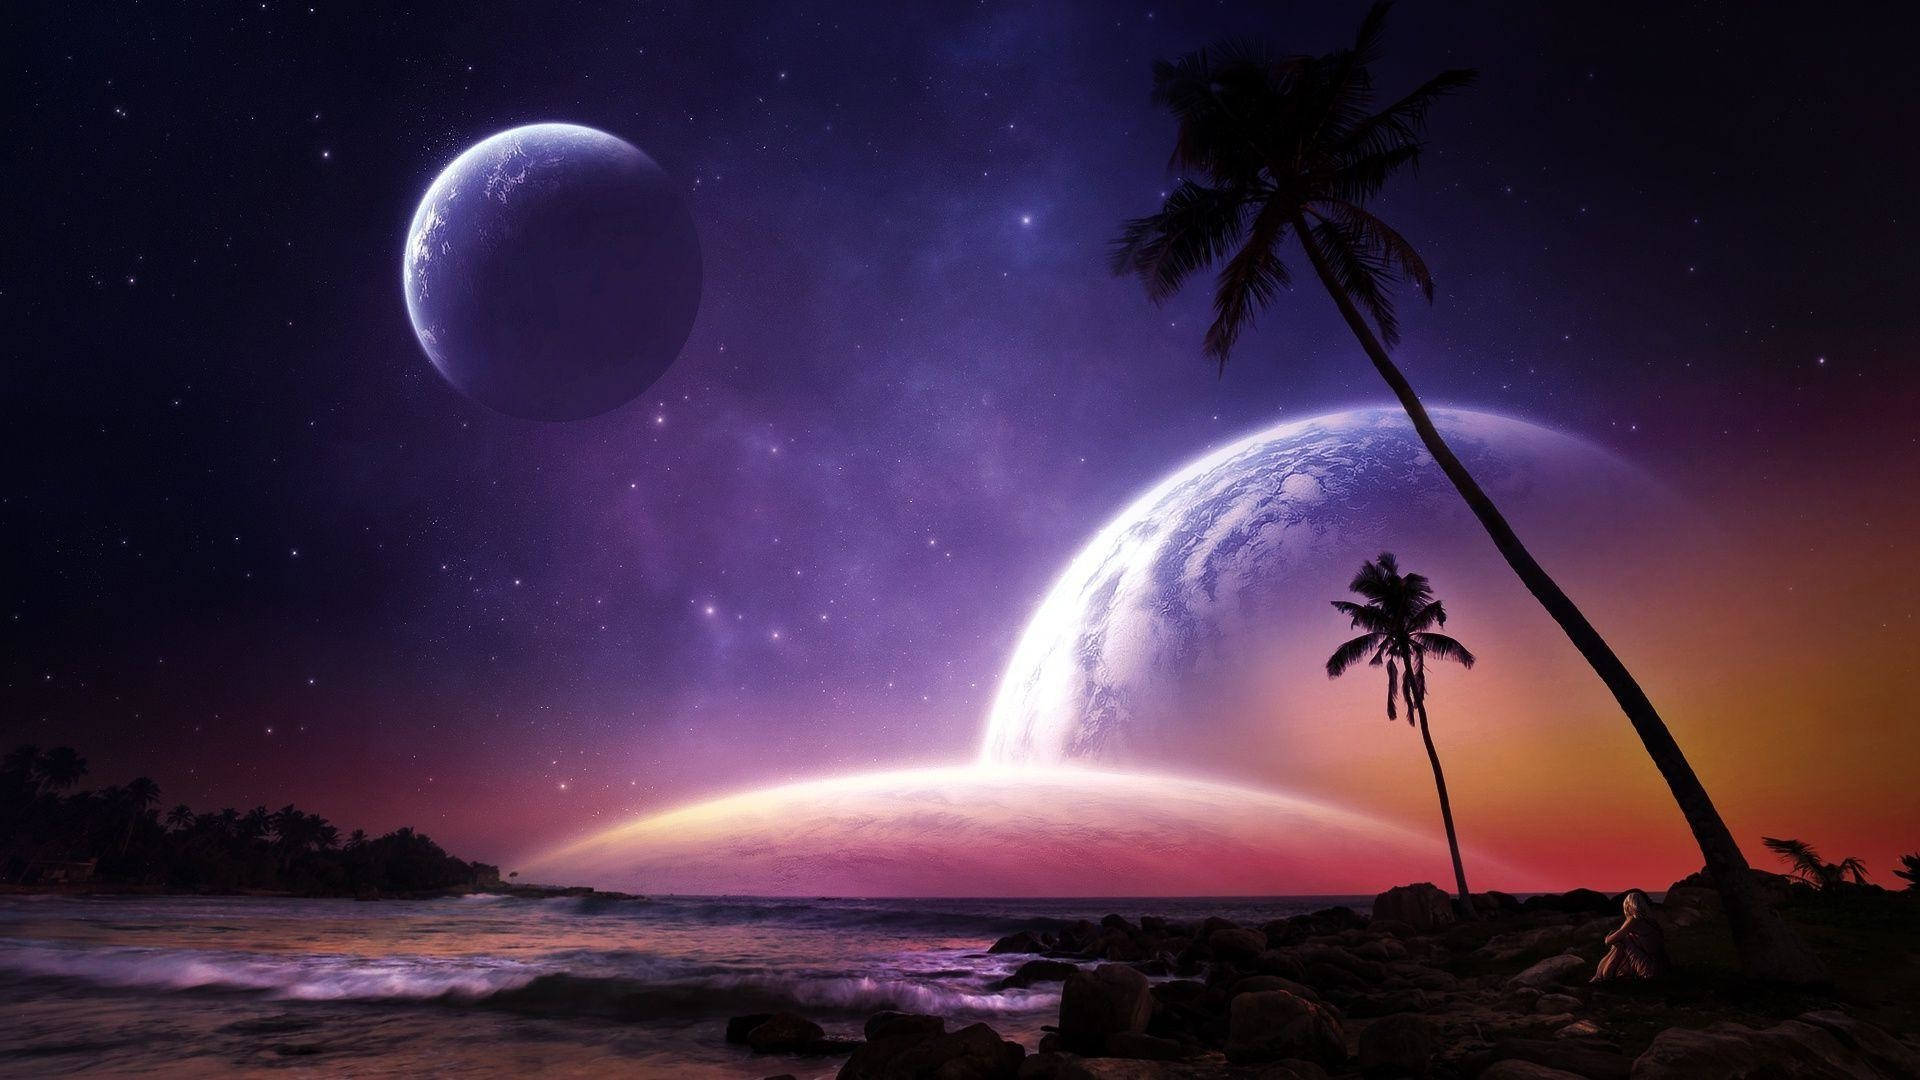 Res: 1920x1080, Moon rising on the beach